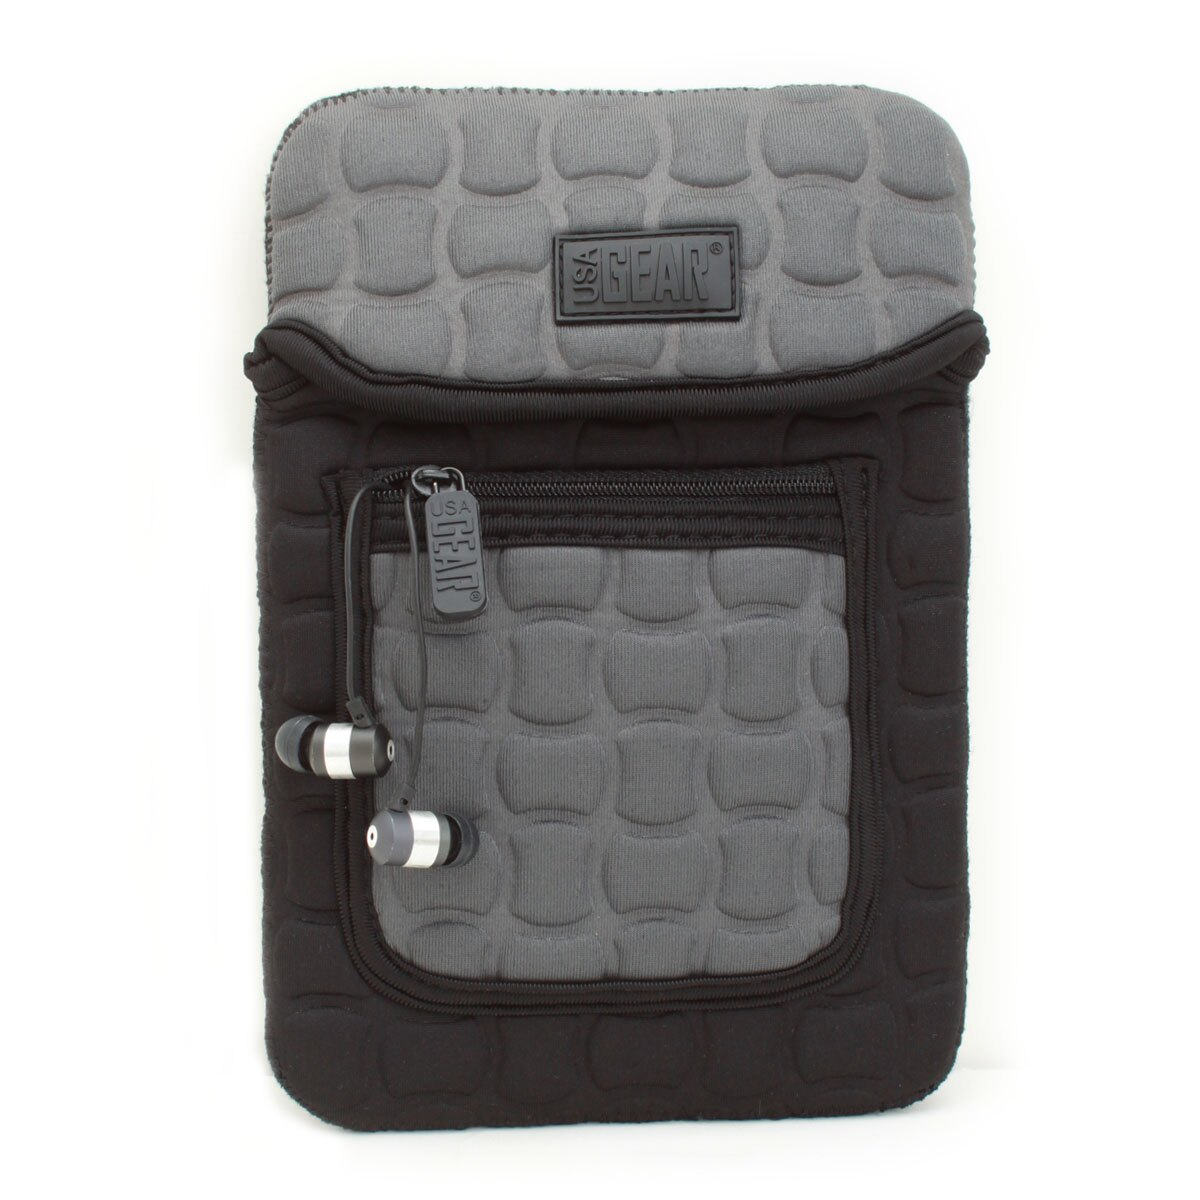 FlexARMOR X Neoprene Tablet Sleeve Case with Carrying Handle , Shock Protection & Accessory Pocket 7